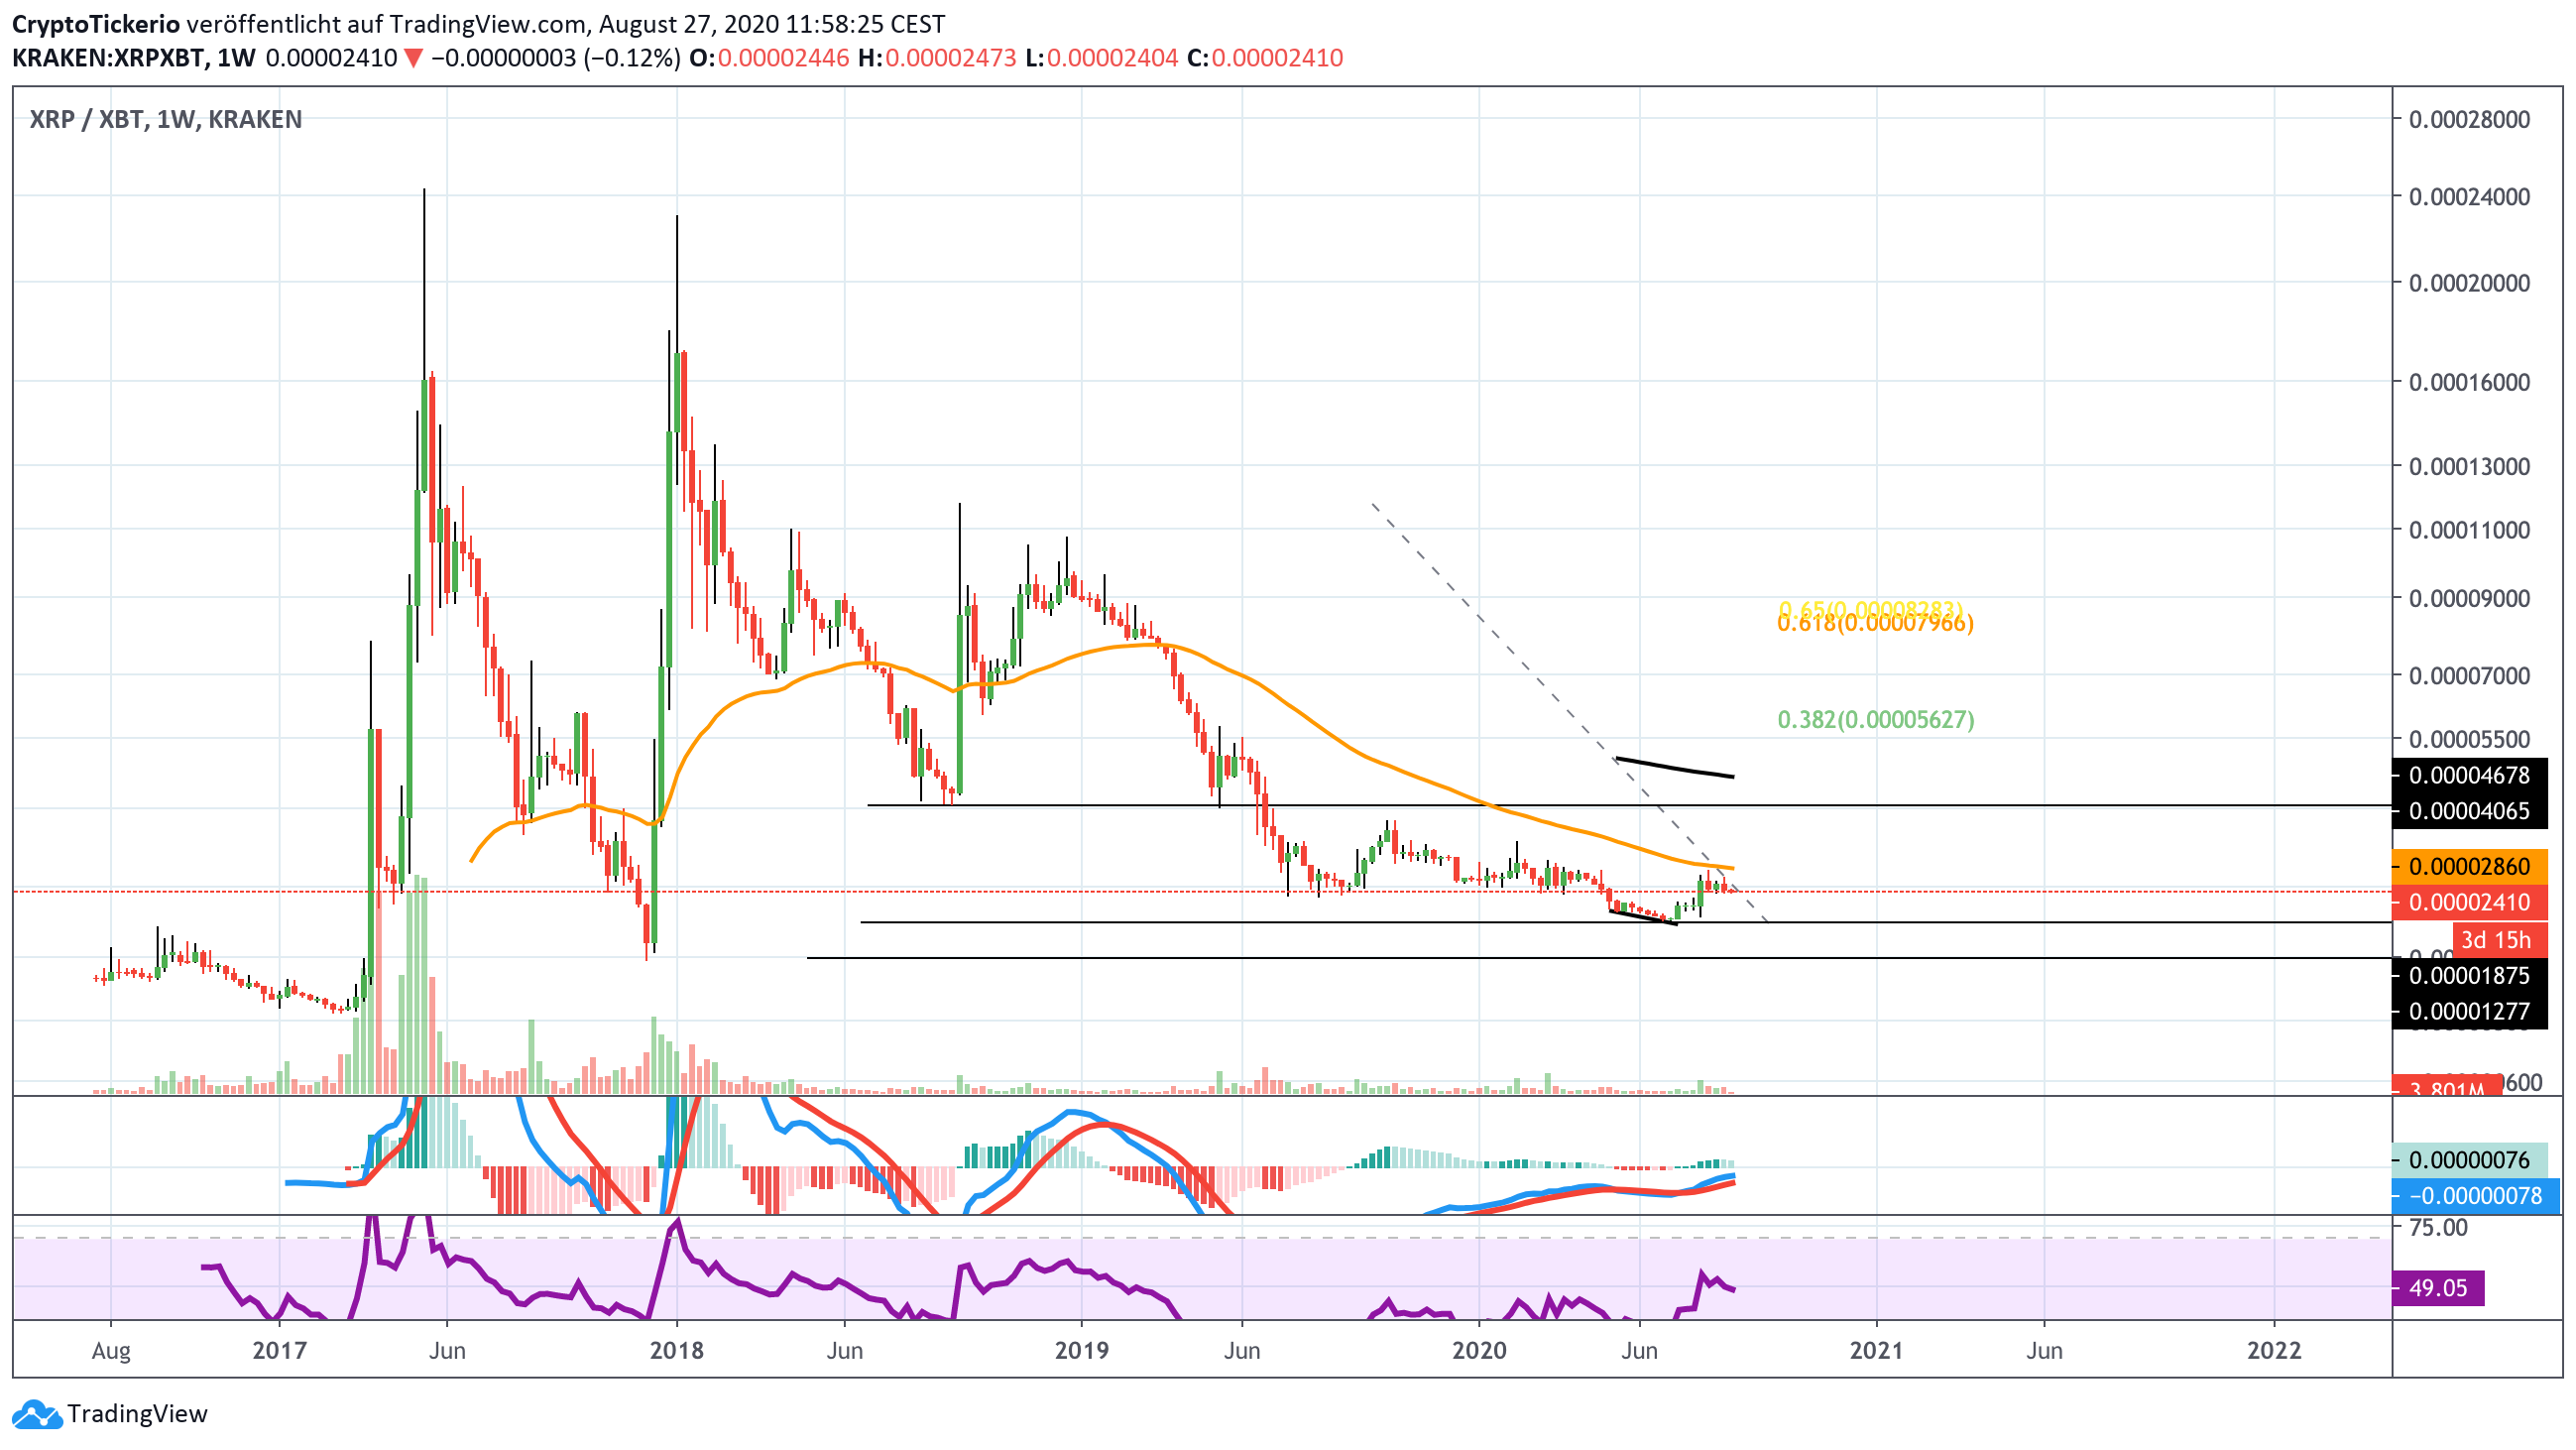 XRP/XBT Weekly – Tradingview